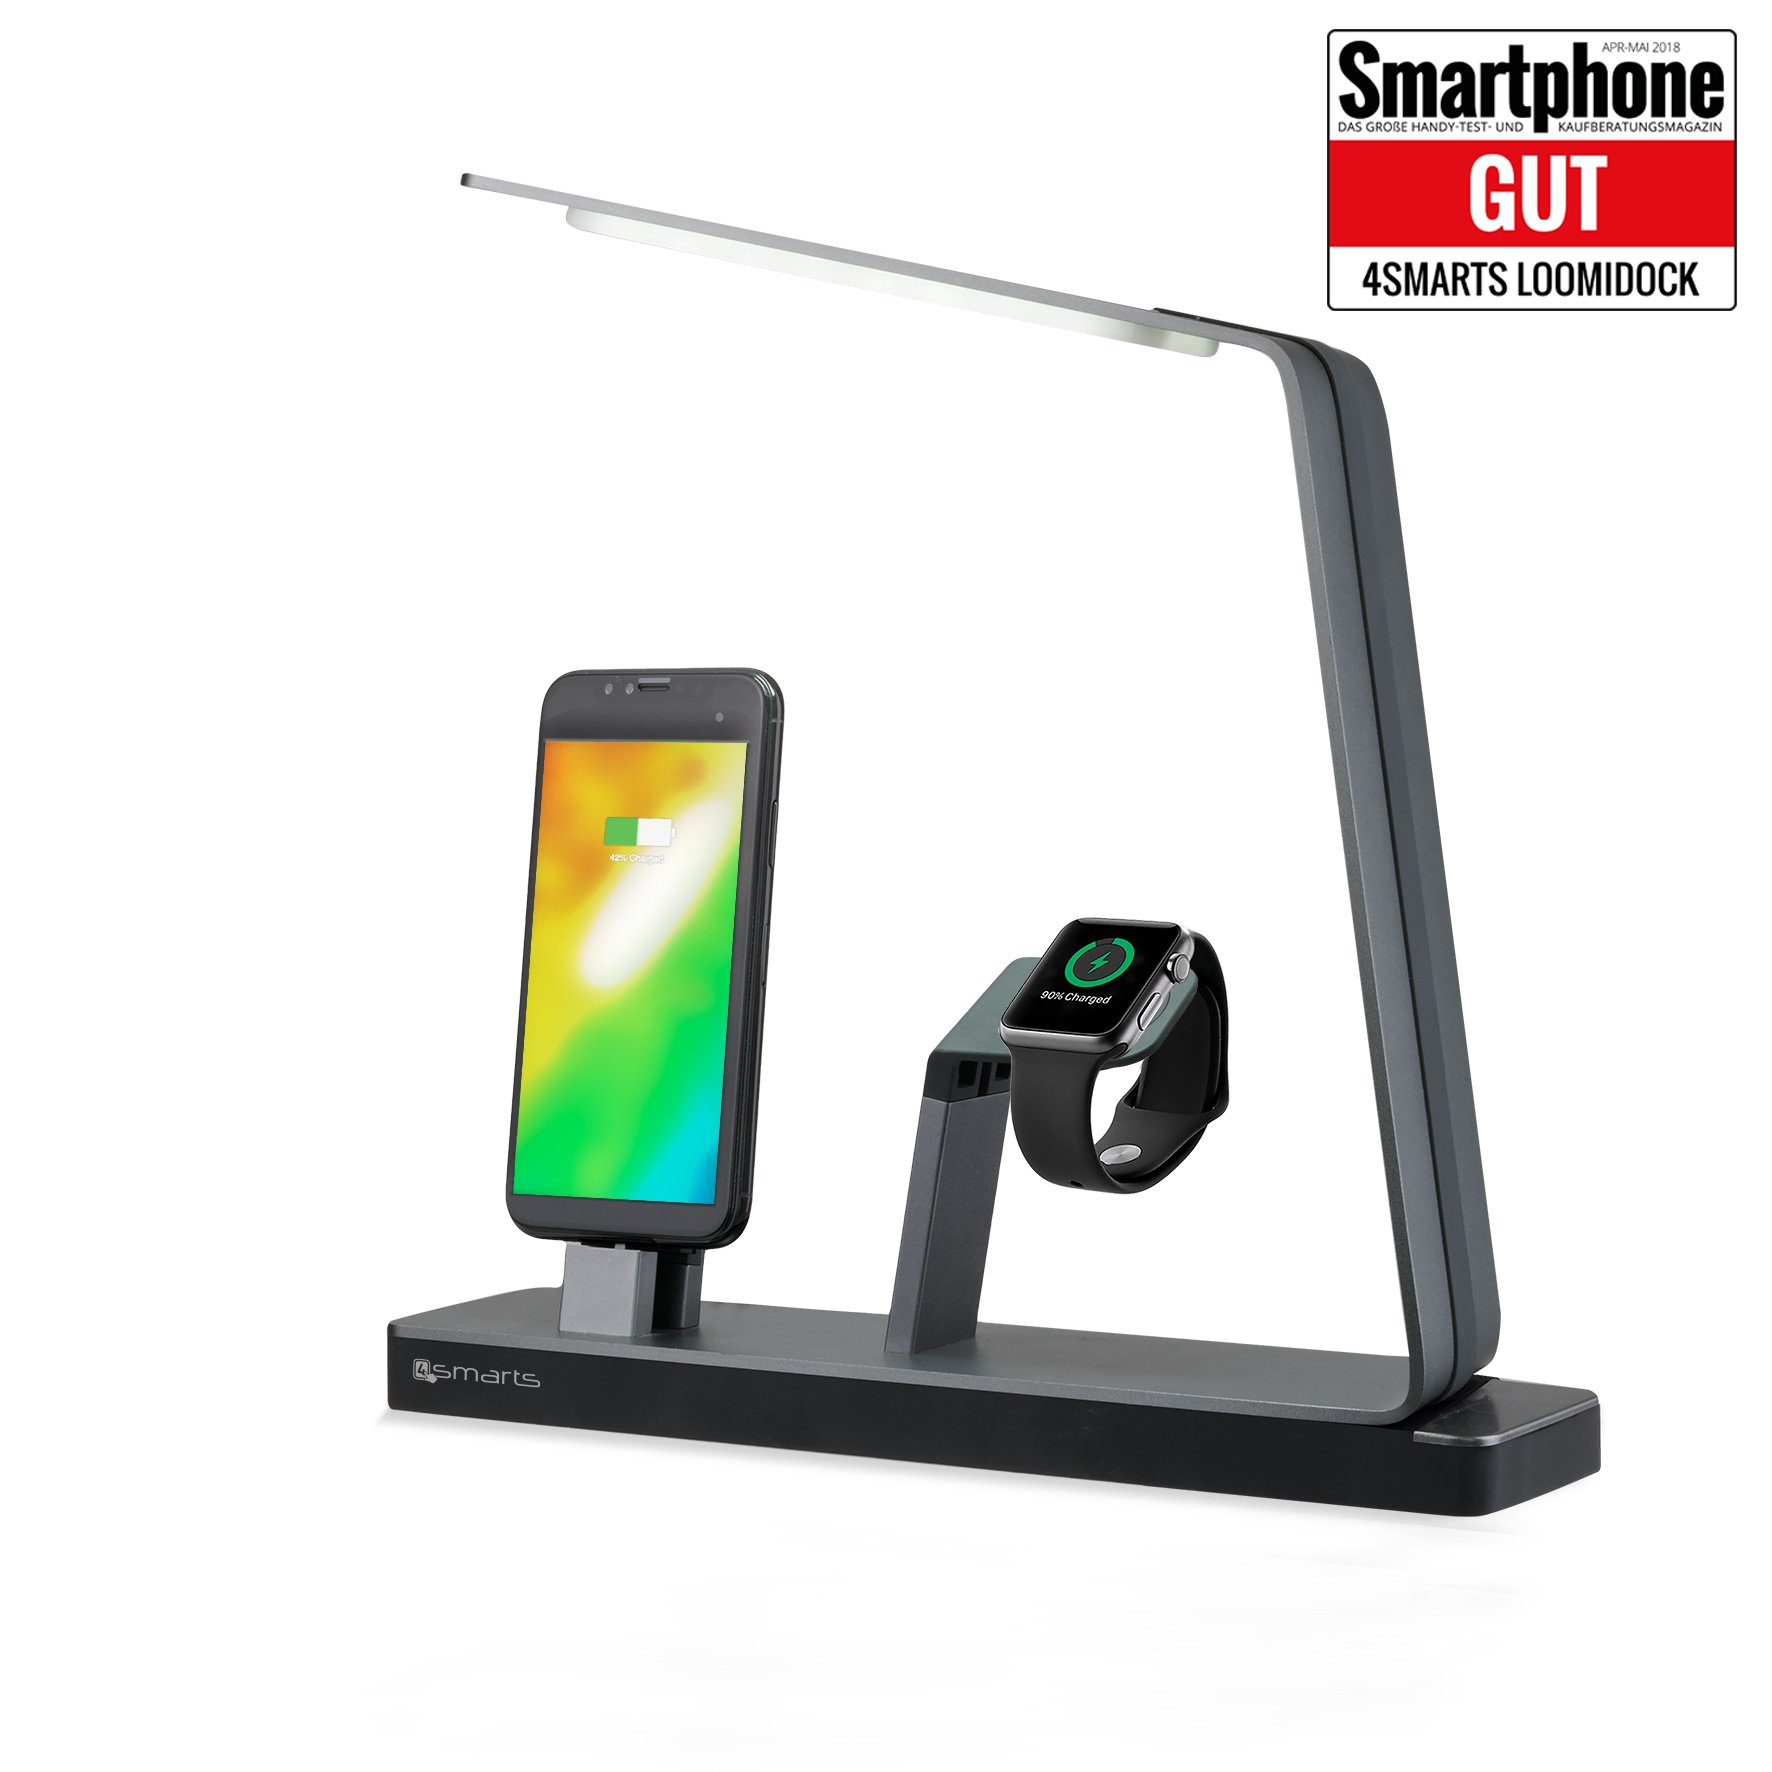 Image of   4smarts LoomiDock Charging Station w. LED Lamp For Apple Devices Sort / Sølv